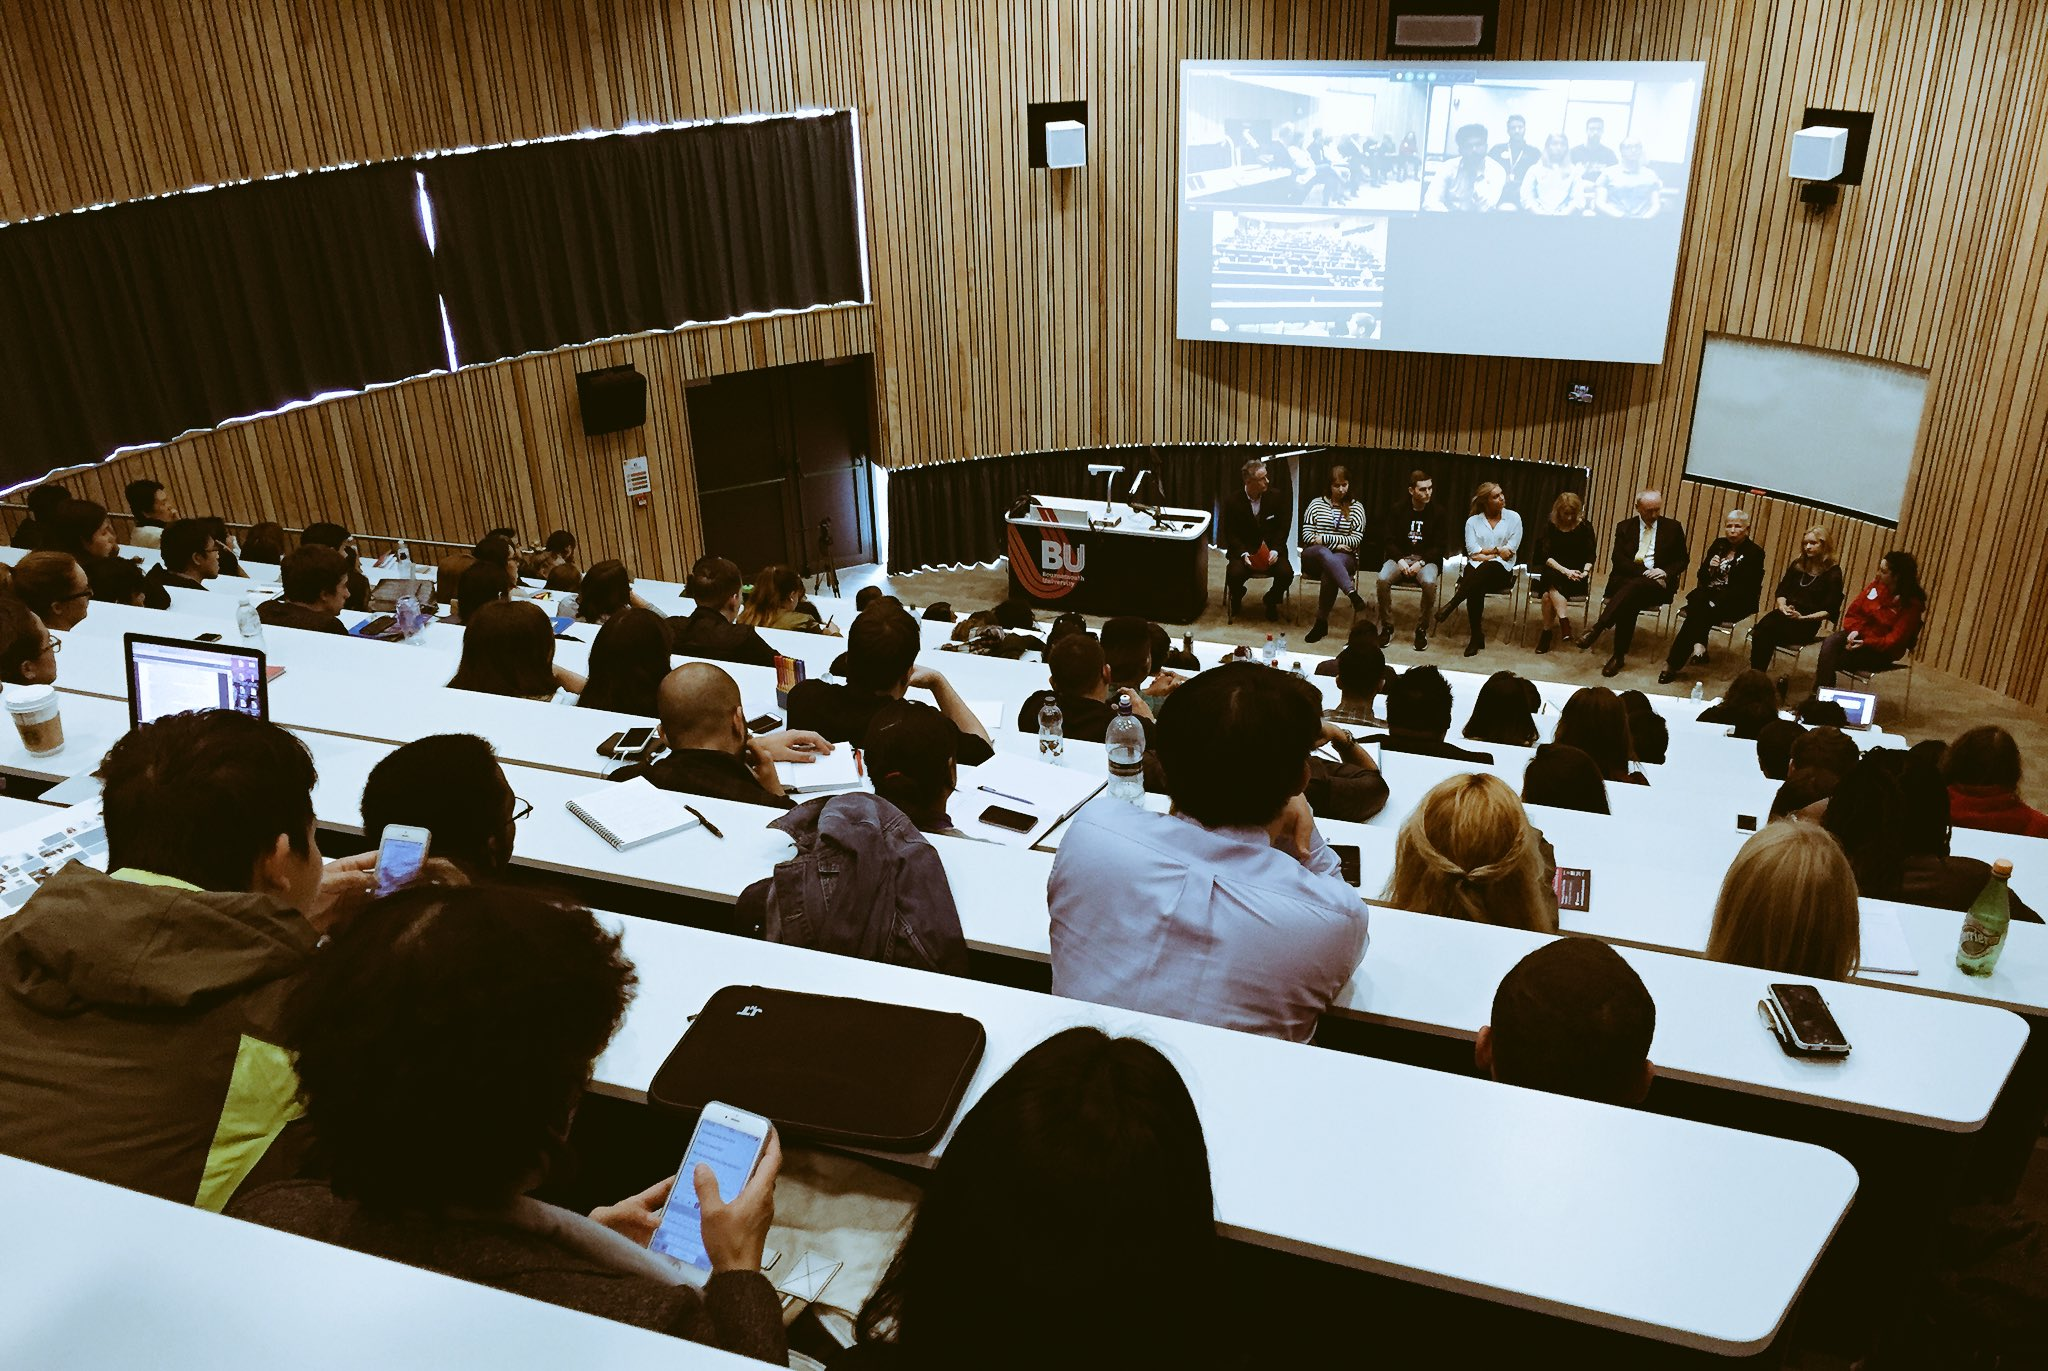 Full house for #BUBglobal International Opportunities Festival at @BournemouthUni https://t.co/e5ic4EOXmC